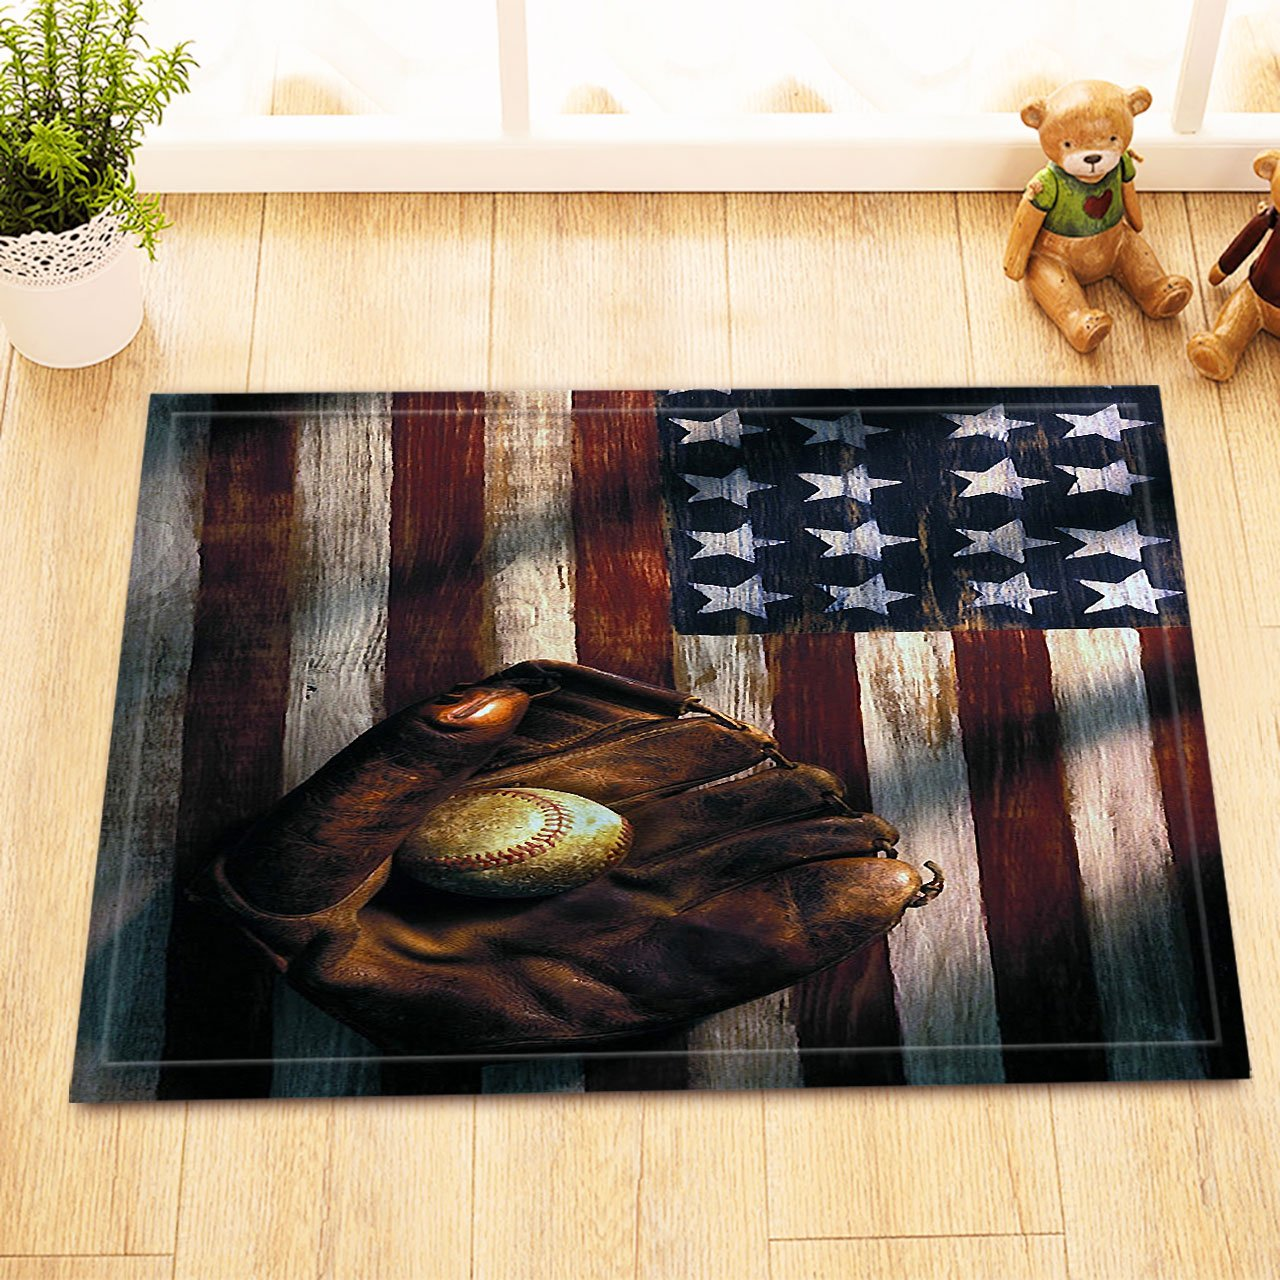 LB Baseball Gloves Ball American Flag Background Decor Rugs for Bathroom Floor, Safe Non Slip Rubber Backing Comfortable Soft Surface, American Sports Culture Decor Rug 15 x 23 Inches